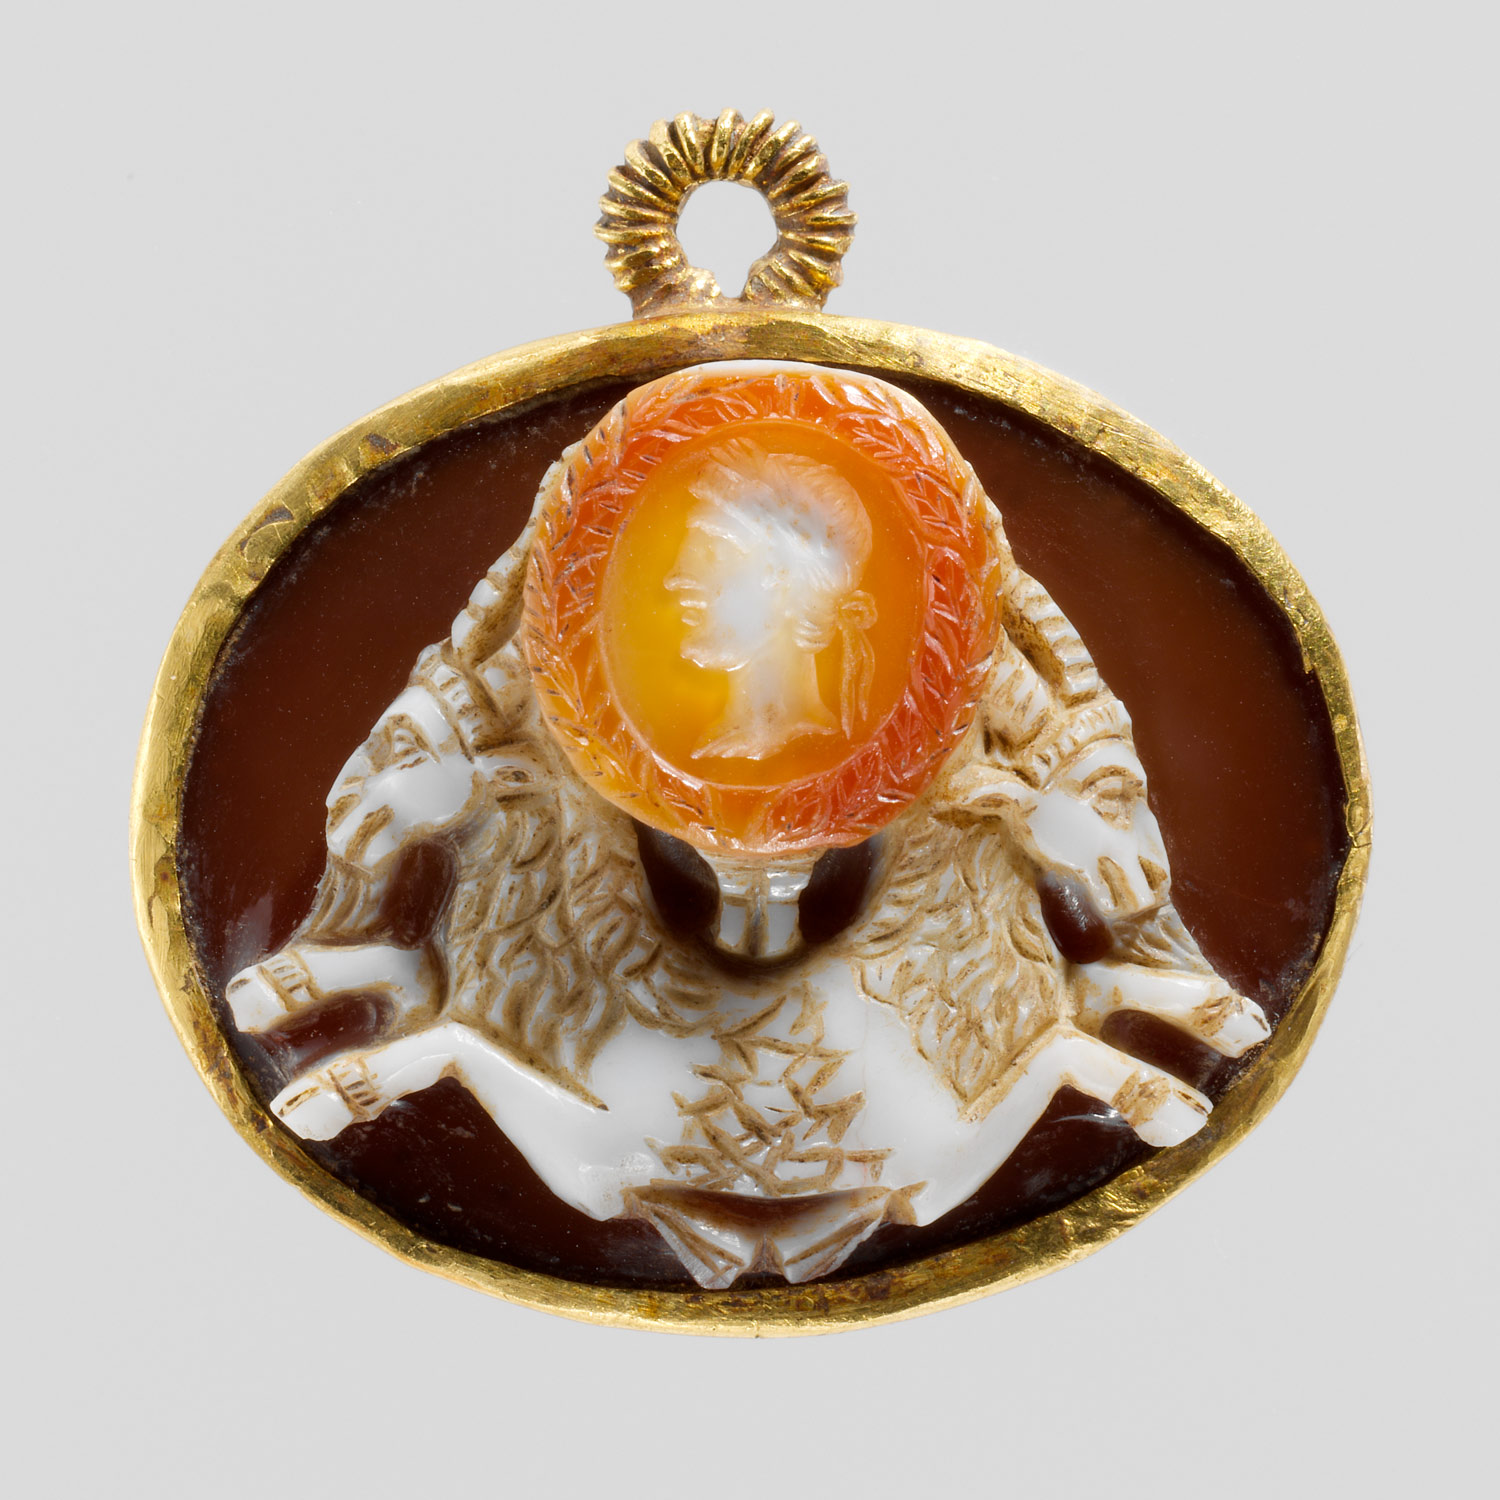 Sardonyx cameo of a double capricorn with a portrait of the emperor Augustus